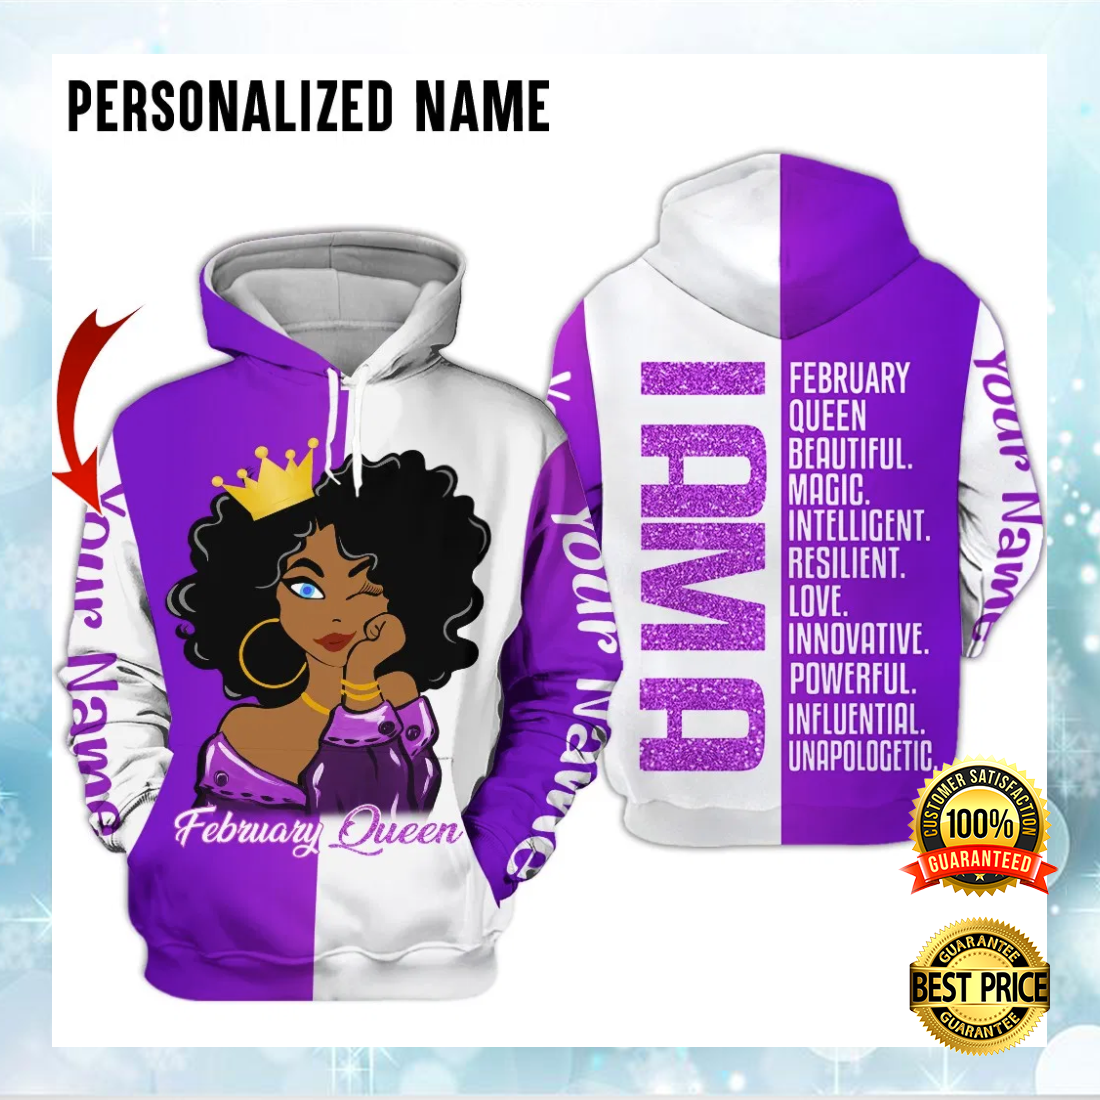 PERSONALIZED I AM A FEBRUARY QUEEN BEAUTIFUL MAGIC INTELLIGENT ALL OVER PRINTED 3D HOODIE 5